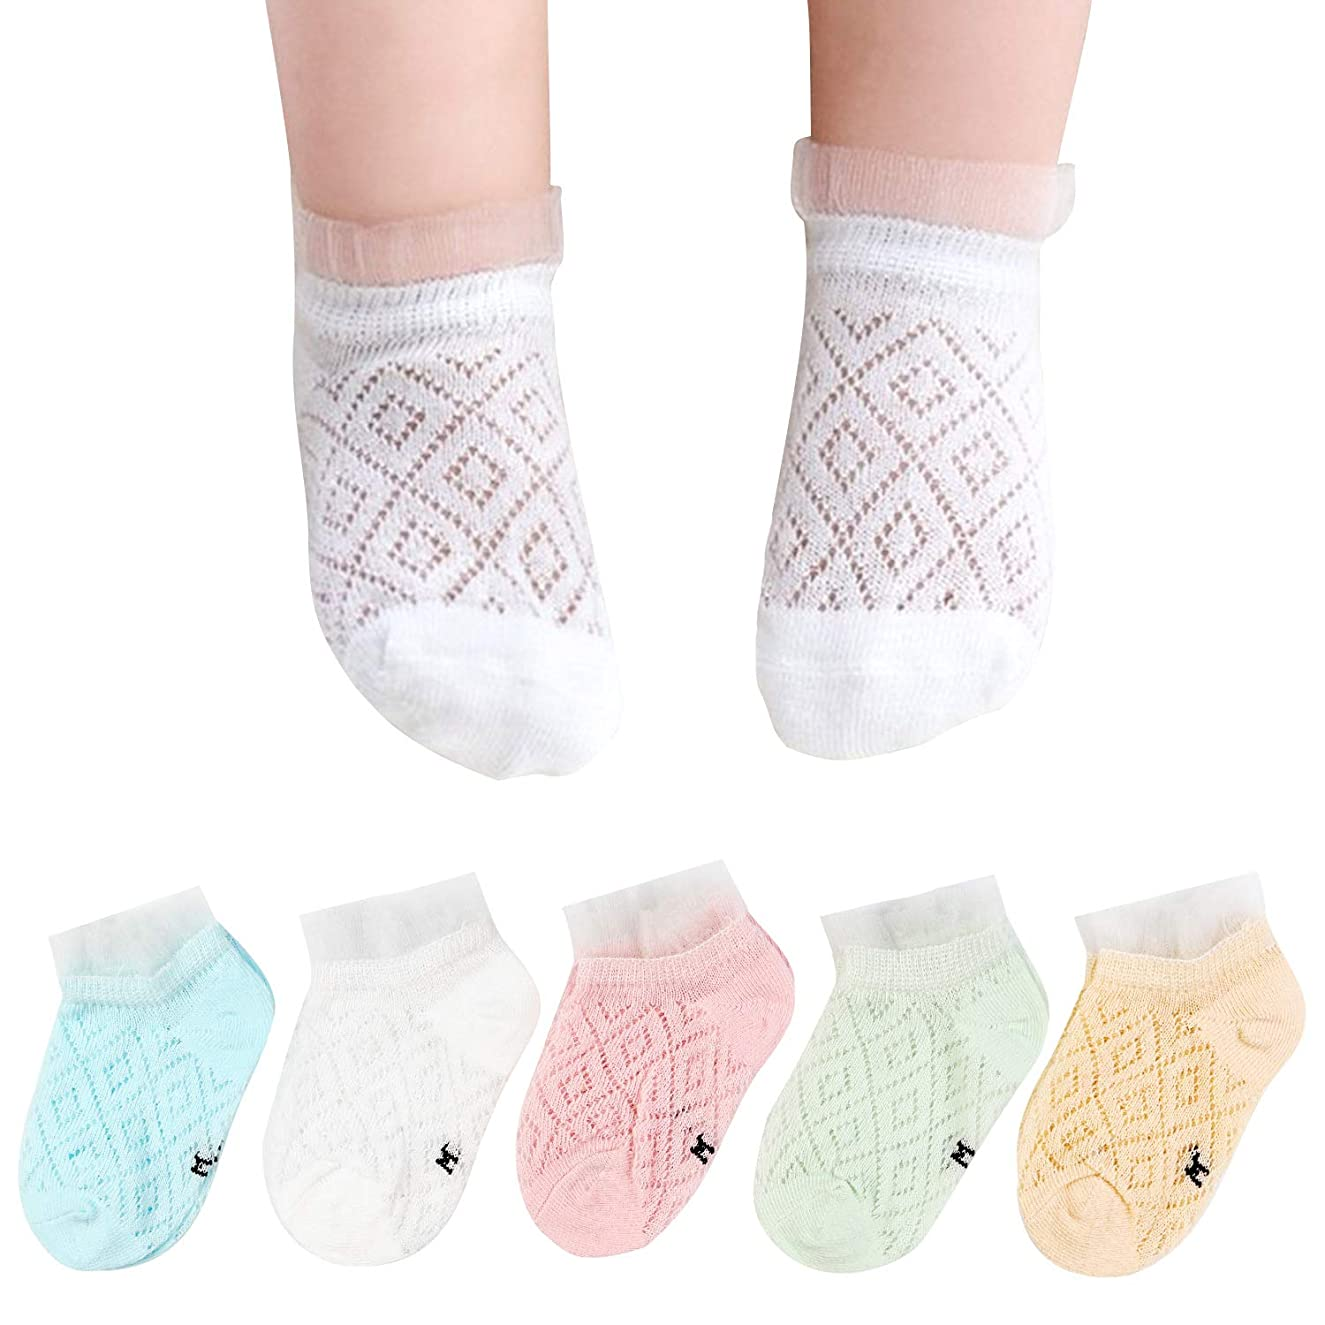 BOOPH 5 Pair Newborn Baby Non Skid Crew Sock Pastel Solid Color Multipack For Baby Toddler Girls 1 Months -8 Years Old